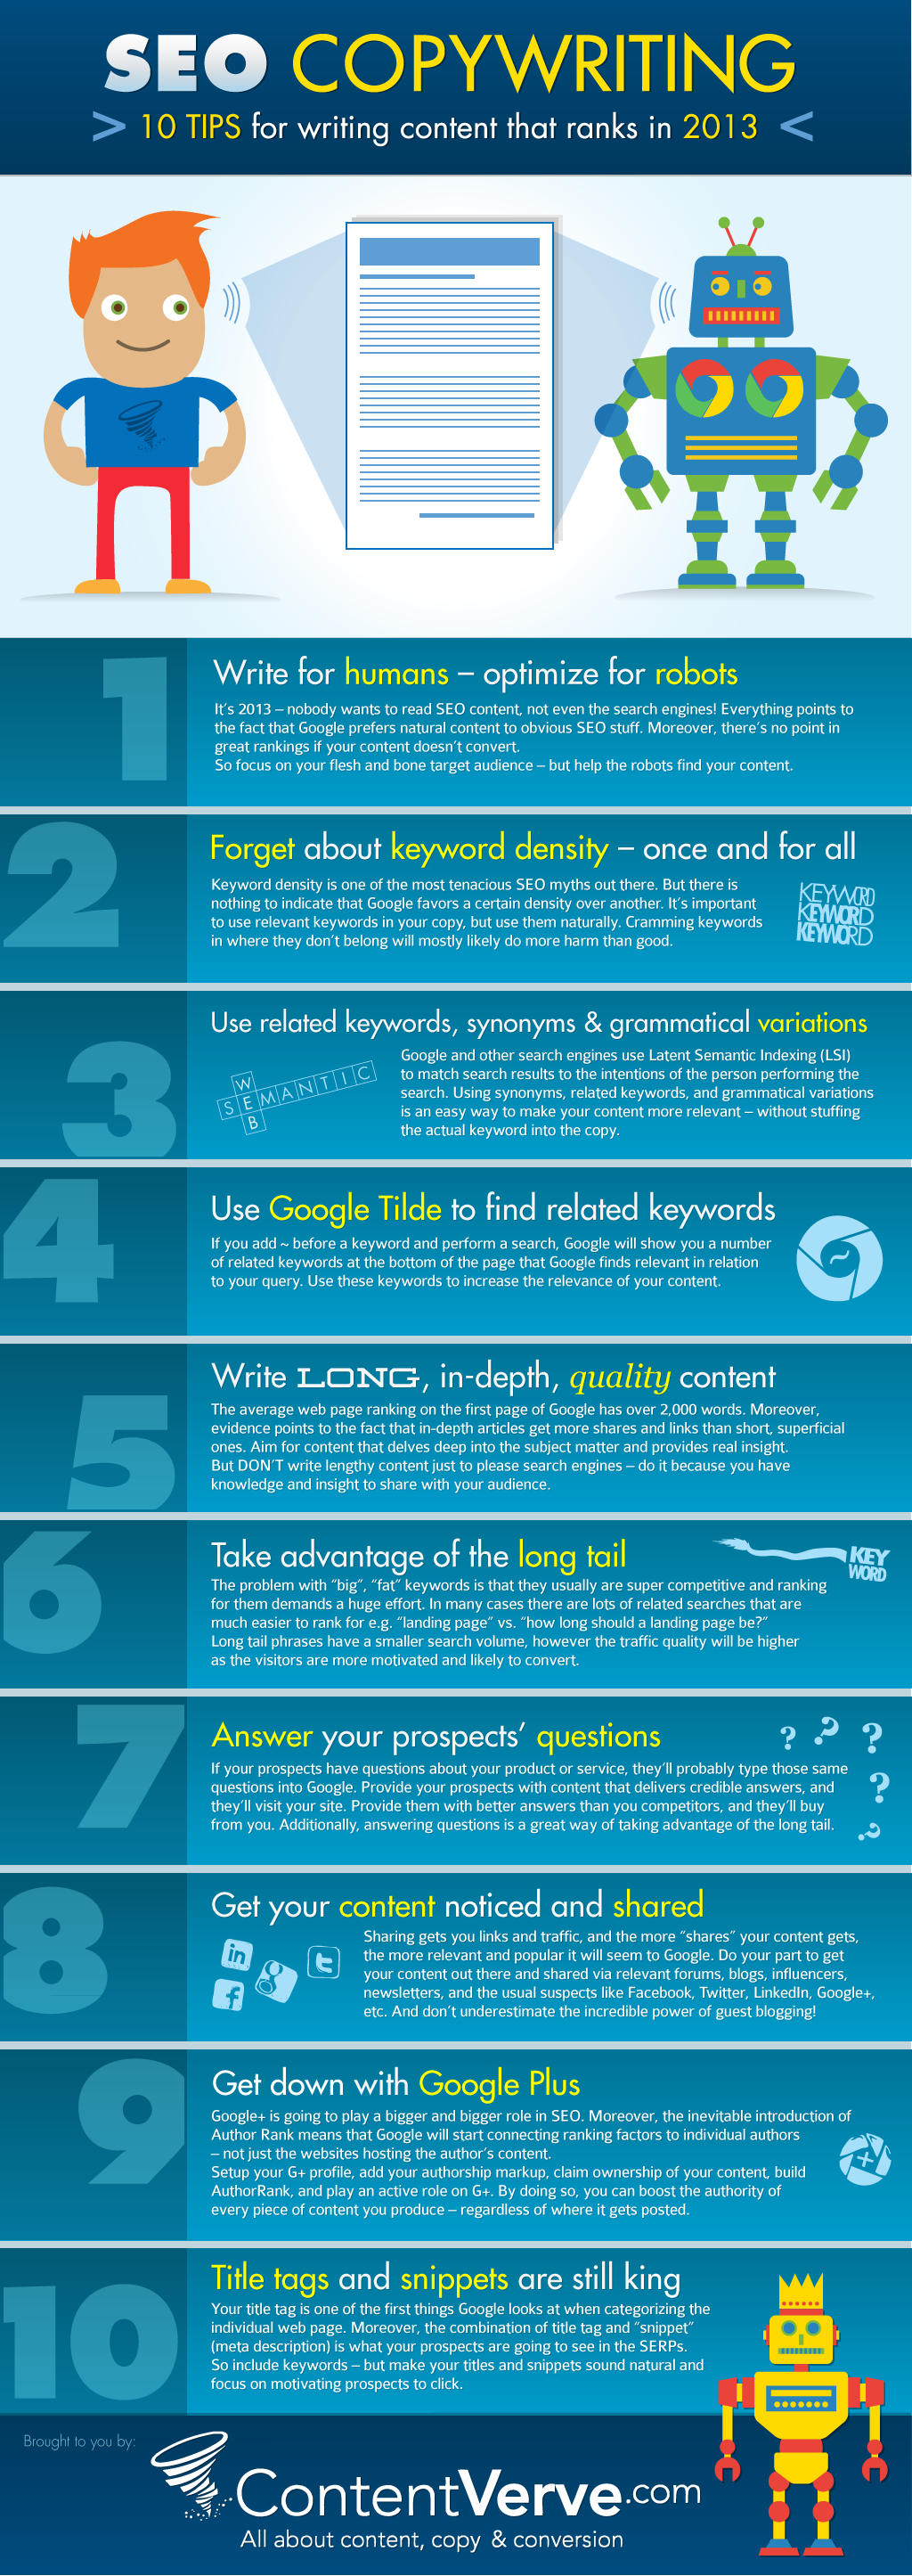 10-SEO-Copyrighting-Tips-For-2013